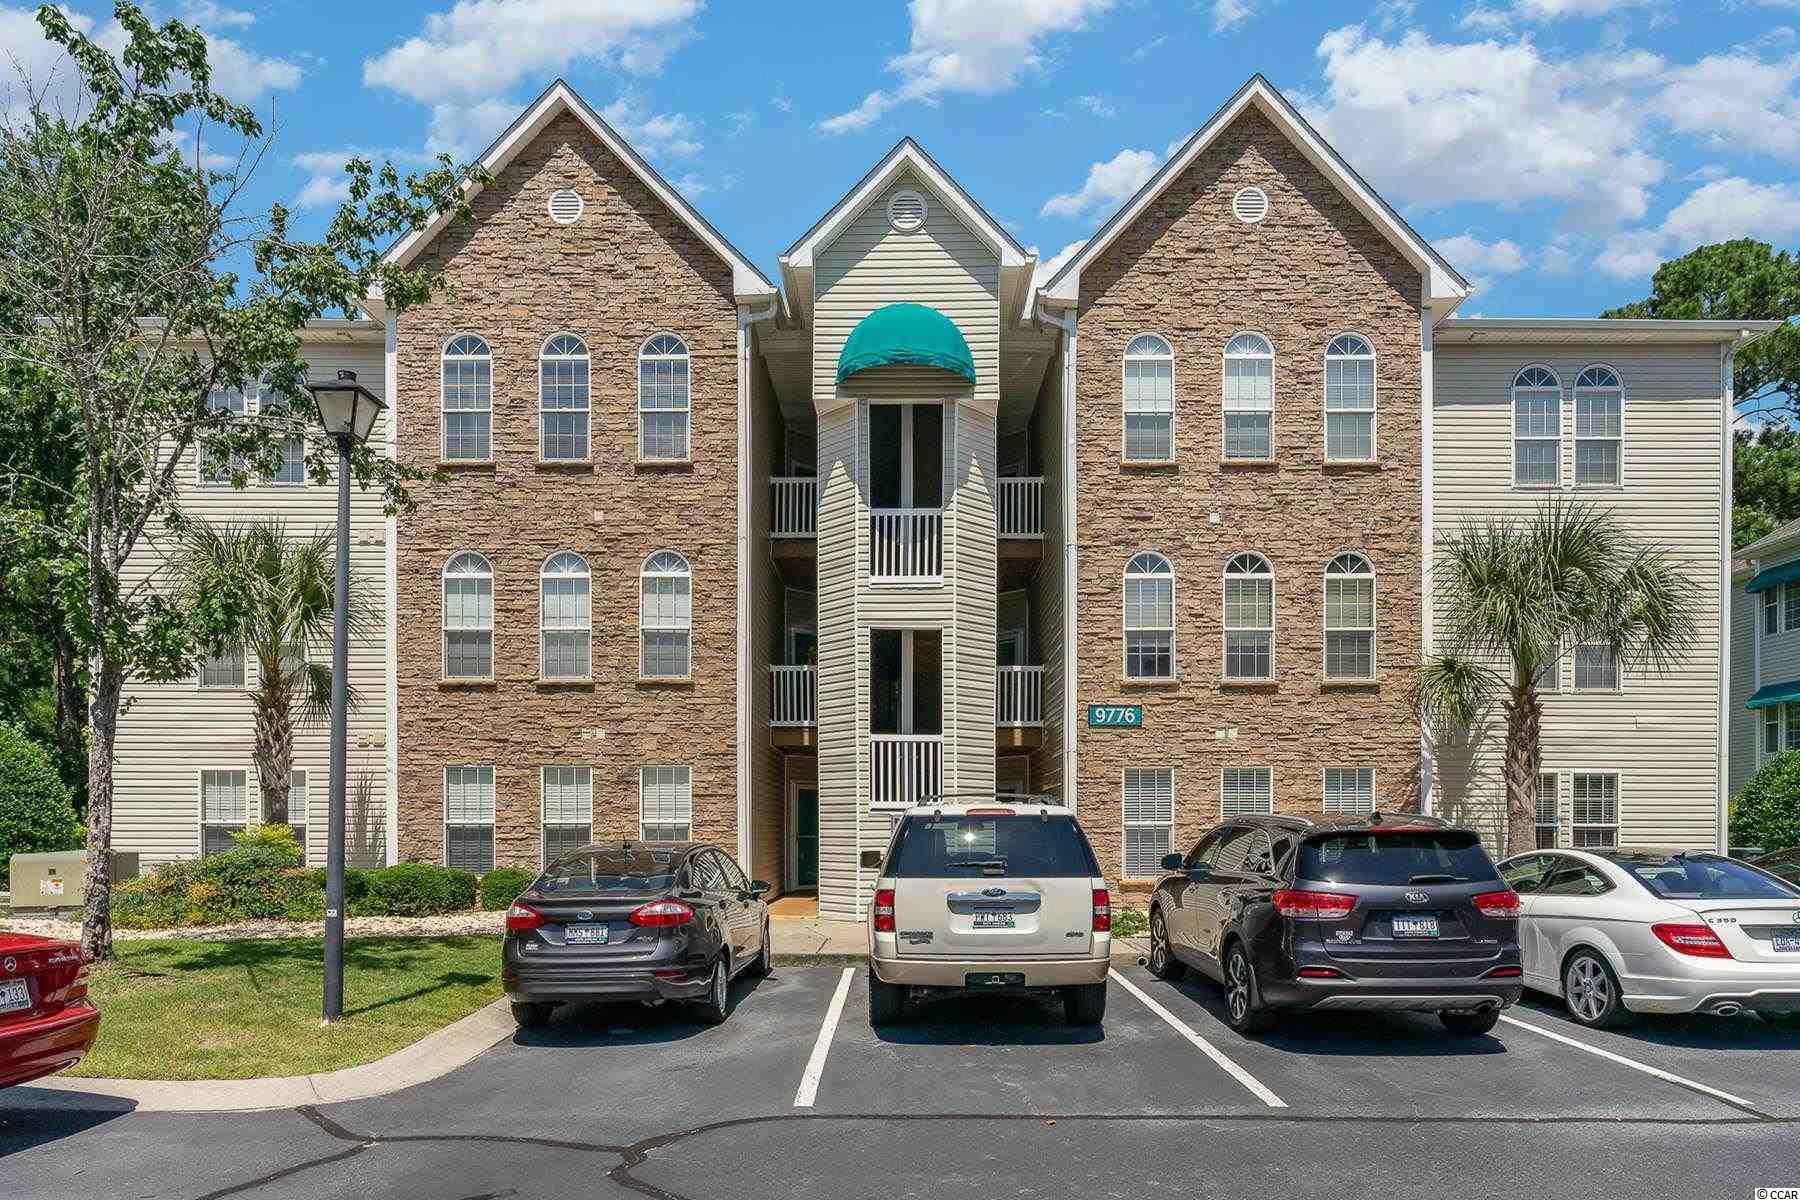 Welcome to this lovely 2 bedroom, 2 full bath condo in the popular Savannah Shores community in the Arcadian area of Myrtle Beach! This unit features an open living and dining area with plenty of natural light, a modern kitchen with stainless steel appliances, granite countertops and plenty of cabinet space, and a relaxing Carolina Room. Both of the generous-sized bedrooms have walk-in closets and private full baths. Savannah Shores owners and guest enjoy great amenities including a community pool and tennis courts, walking paths, a putting green, and volleyball.  The location offers easy access to major road, just minutes to the beach and all the shopping, dining, and entertainment the Grand Strand has to offer!